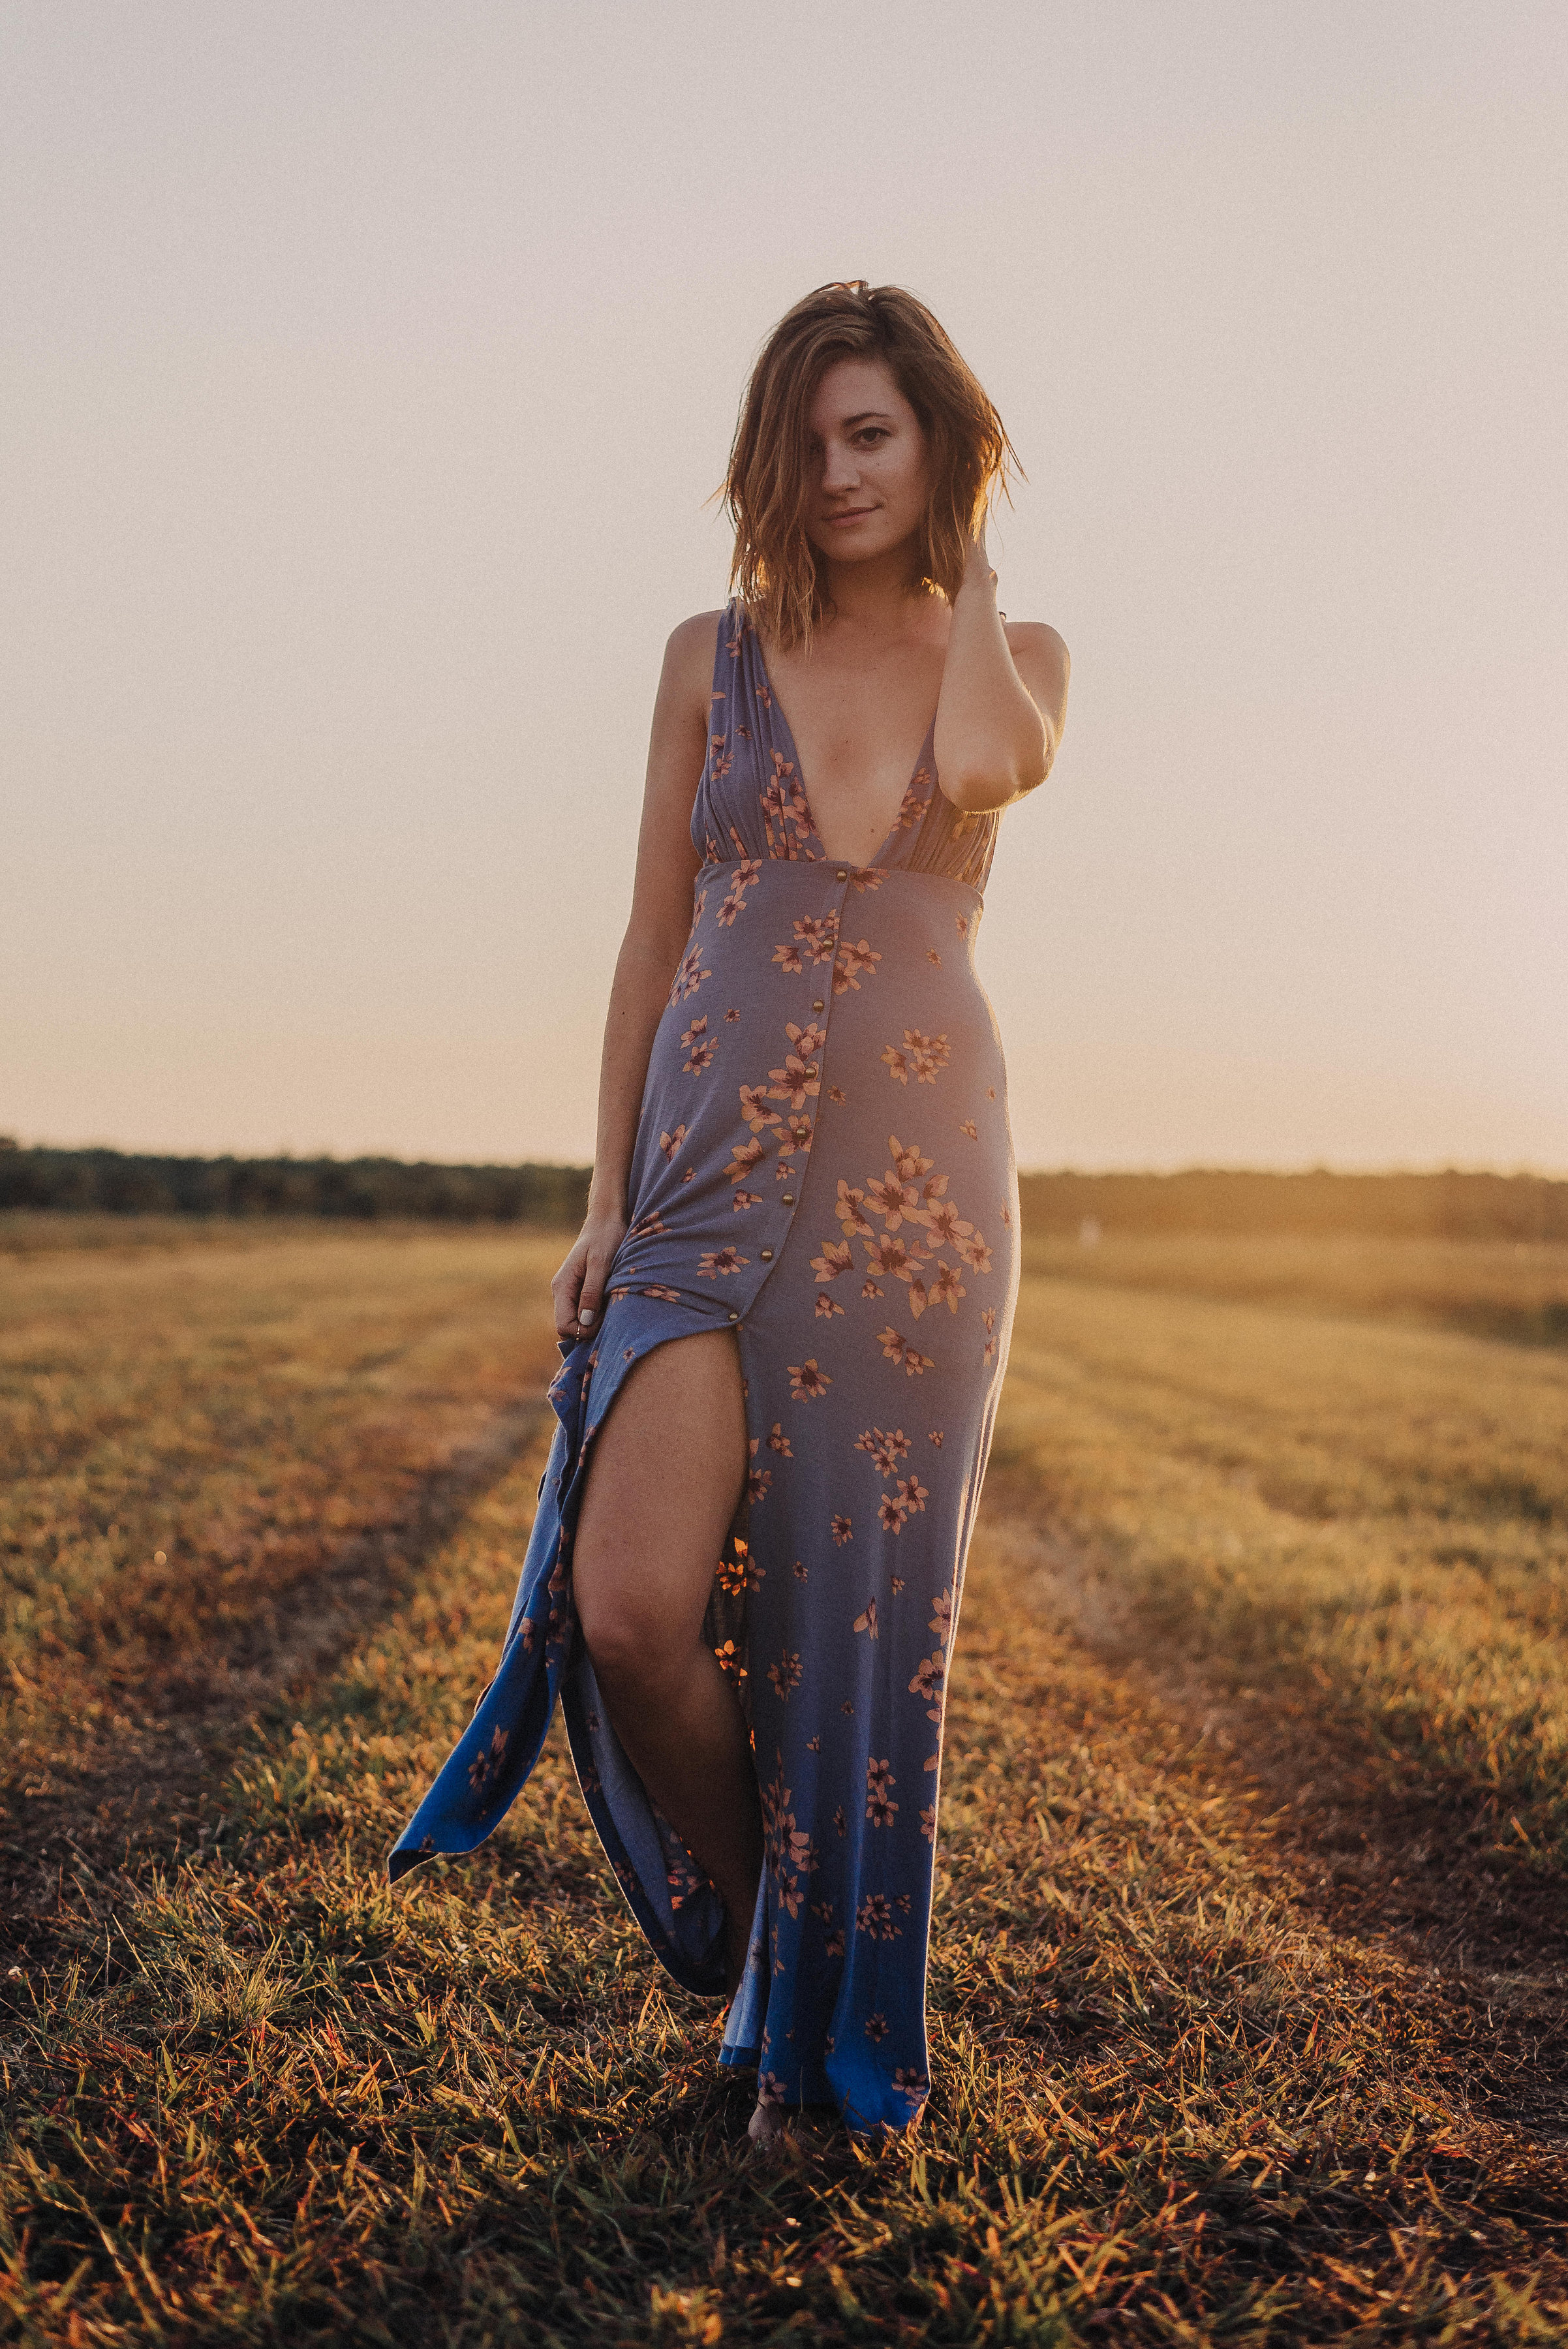 Free People   Other Days Maxi   Katelyn Now   Golden Hour Photo Shoot